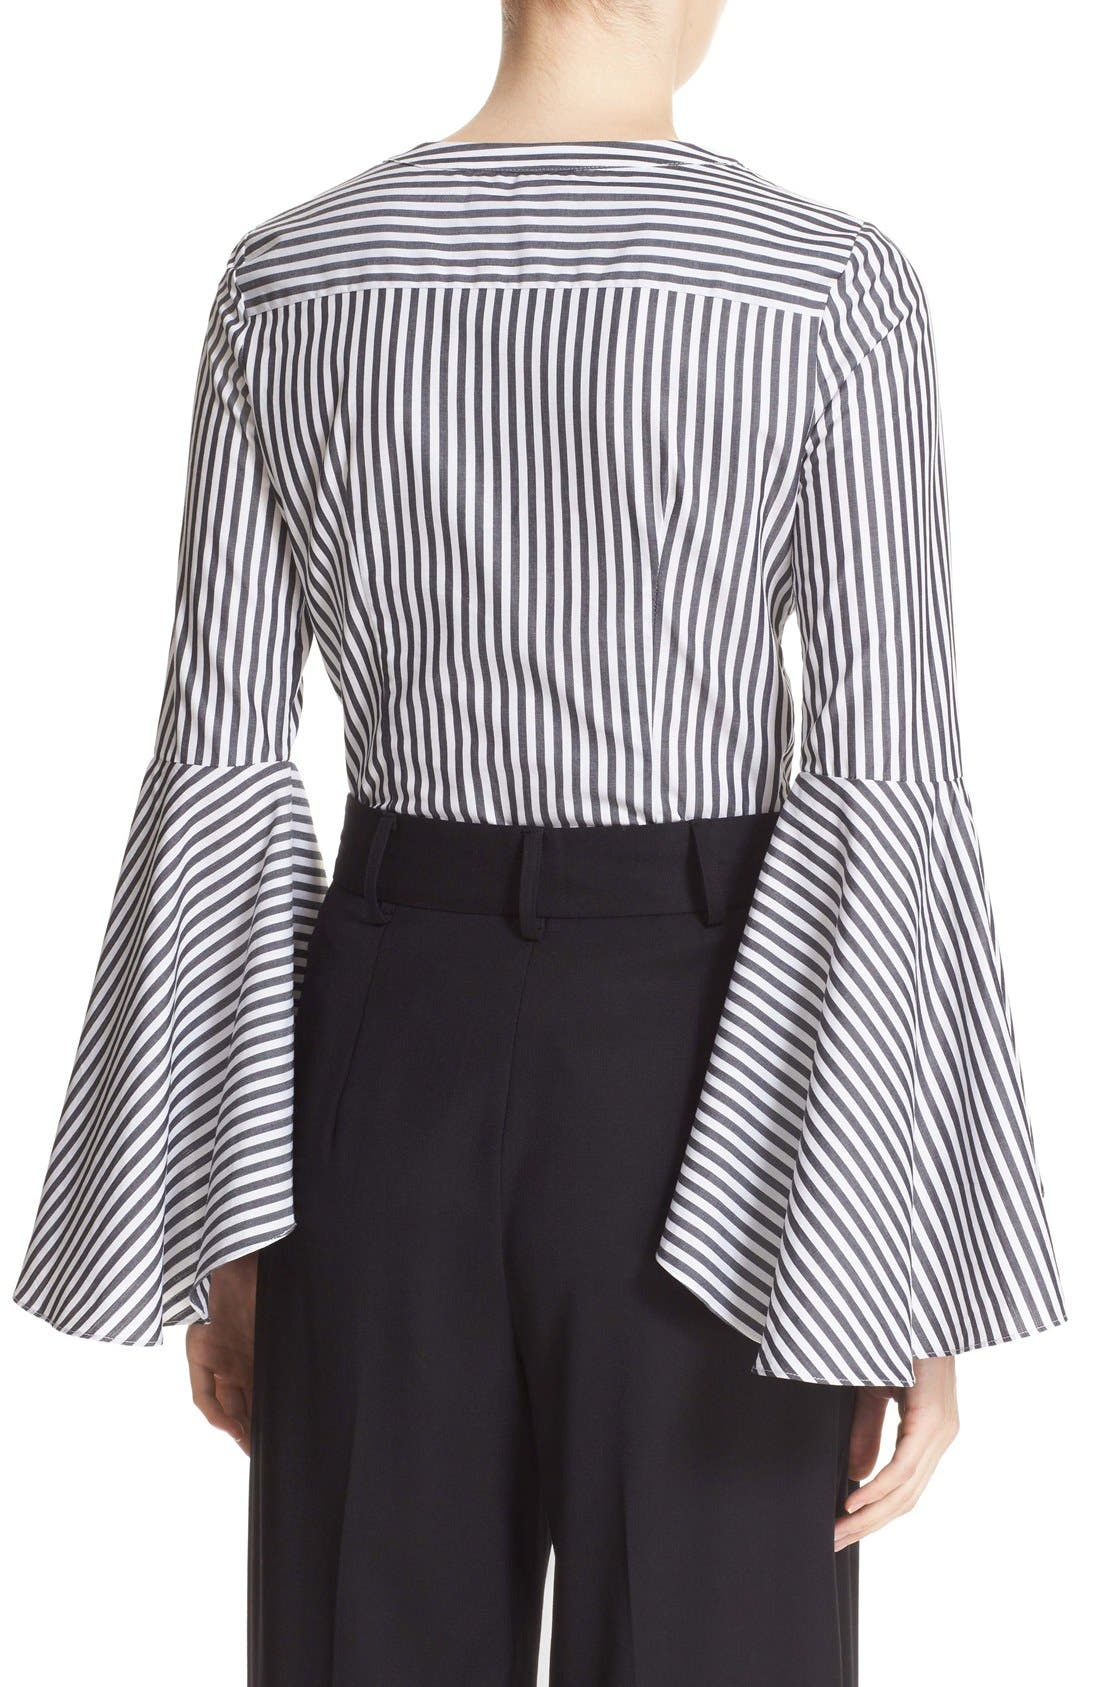 'Ruthie' Stripe Cotton Bell Sleeve Blouse,                             Alternate thumbnail 4, color,                             001